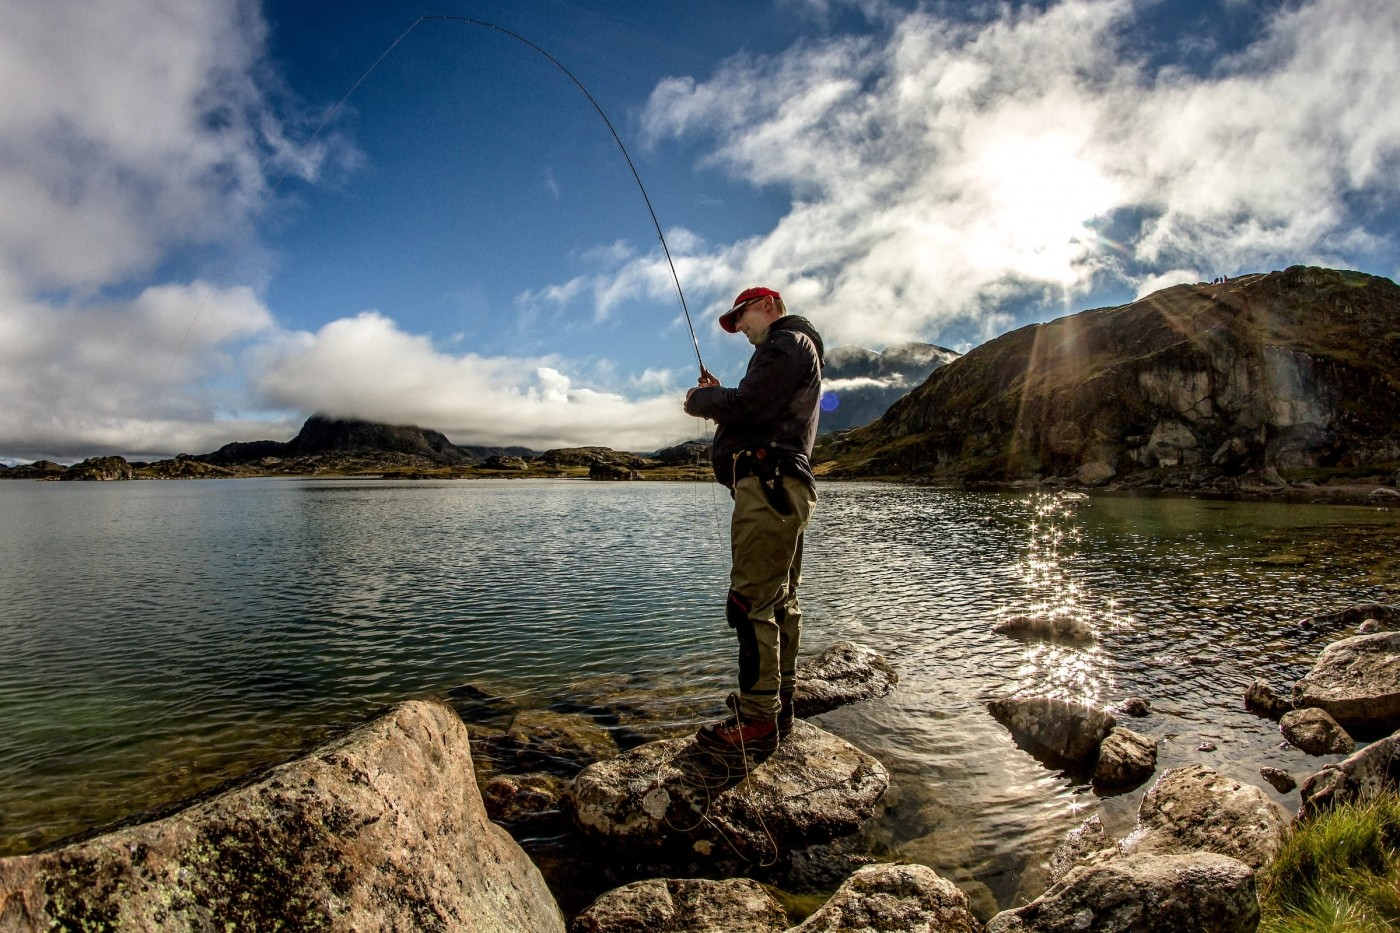 A fisherman at the shores of a lake near the river Erfalik in Greenland. Photo by Mads Pihl - Visit Greenland